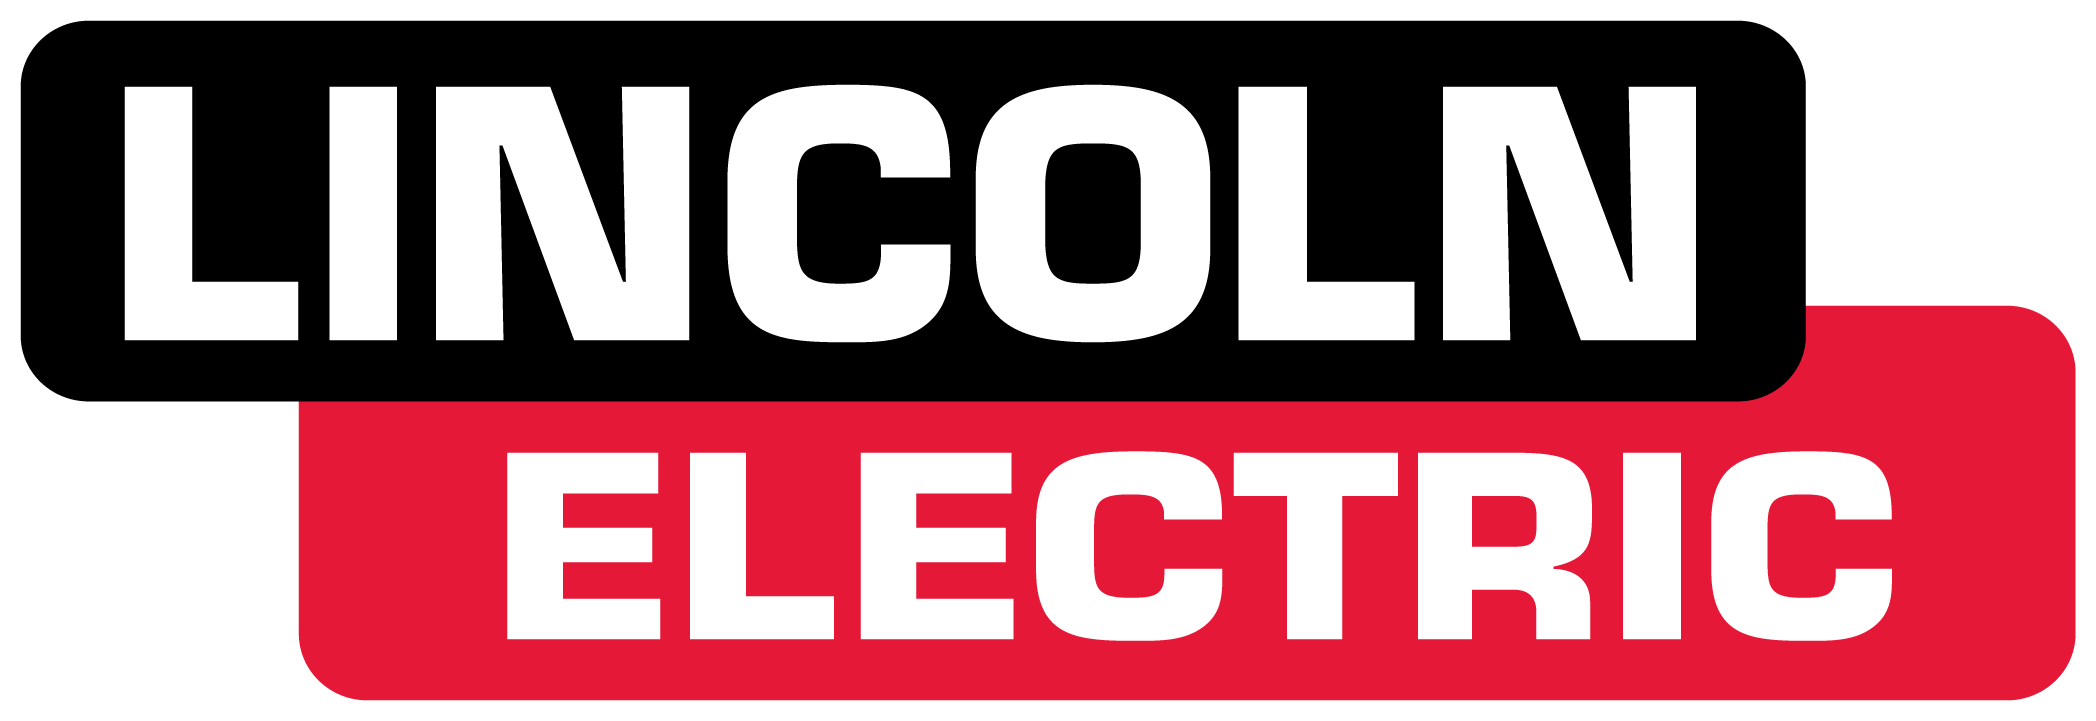 Lincoln Electric color logo for use on dark backgrounds.